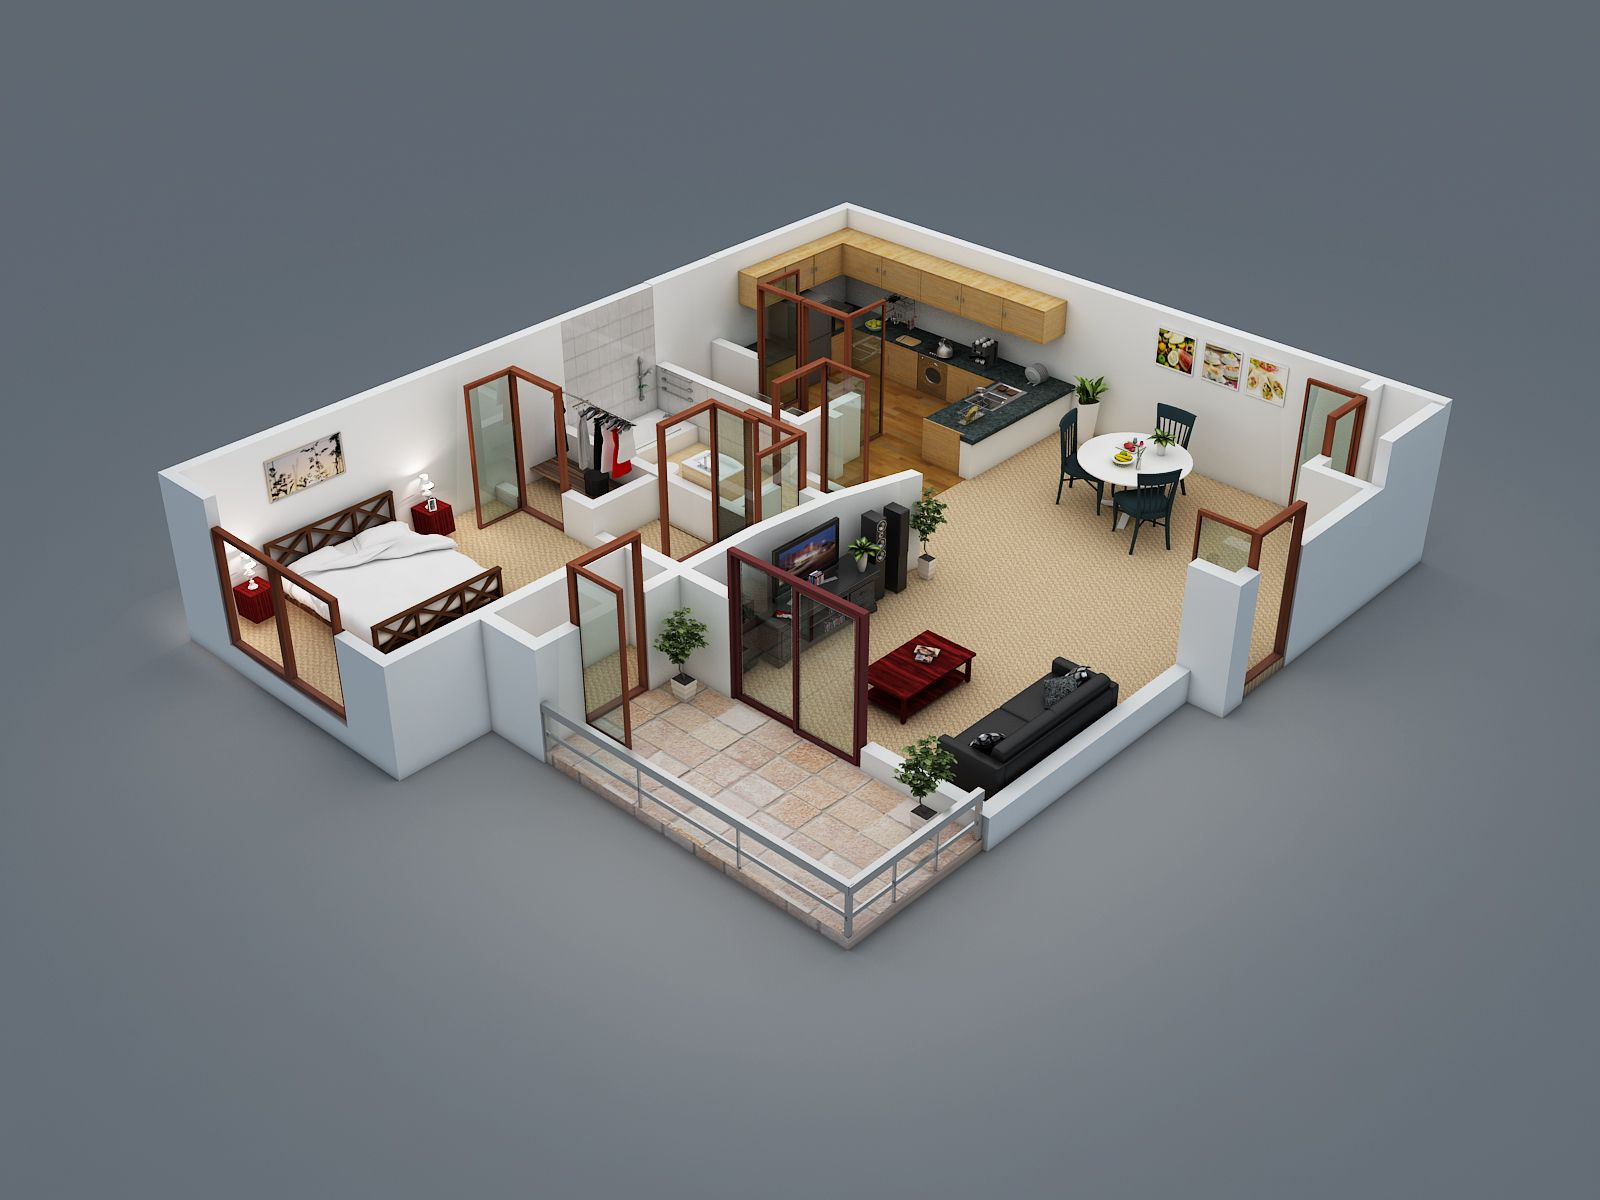 Http Www Rayvatengineering Com 3d Floor Plan One Of The Main Things To Keep In Mind While Ch Open Concept House Plans Floor Plan Design House Design Games